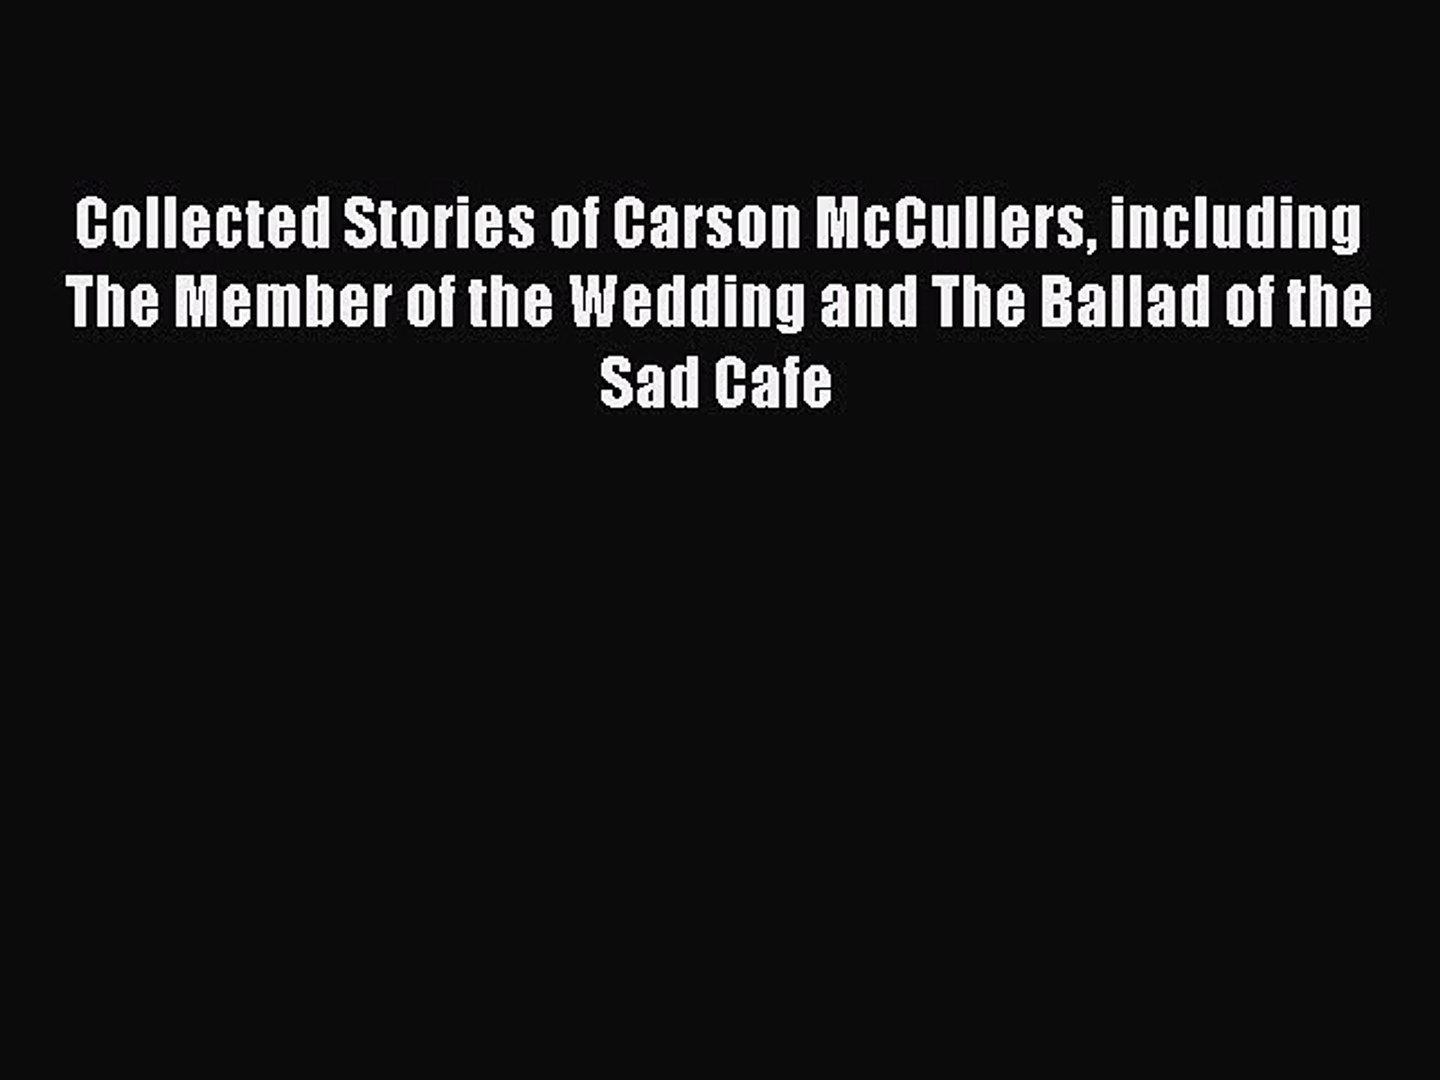 Read Collected Stories of Carson McCullers including The Member of the Wedding and The Ballad